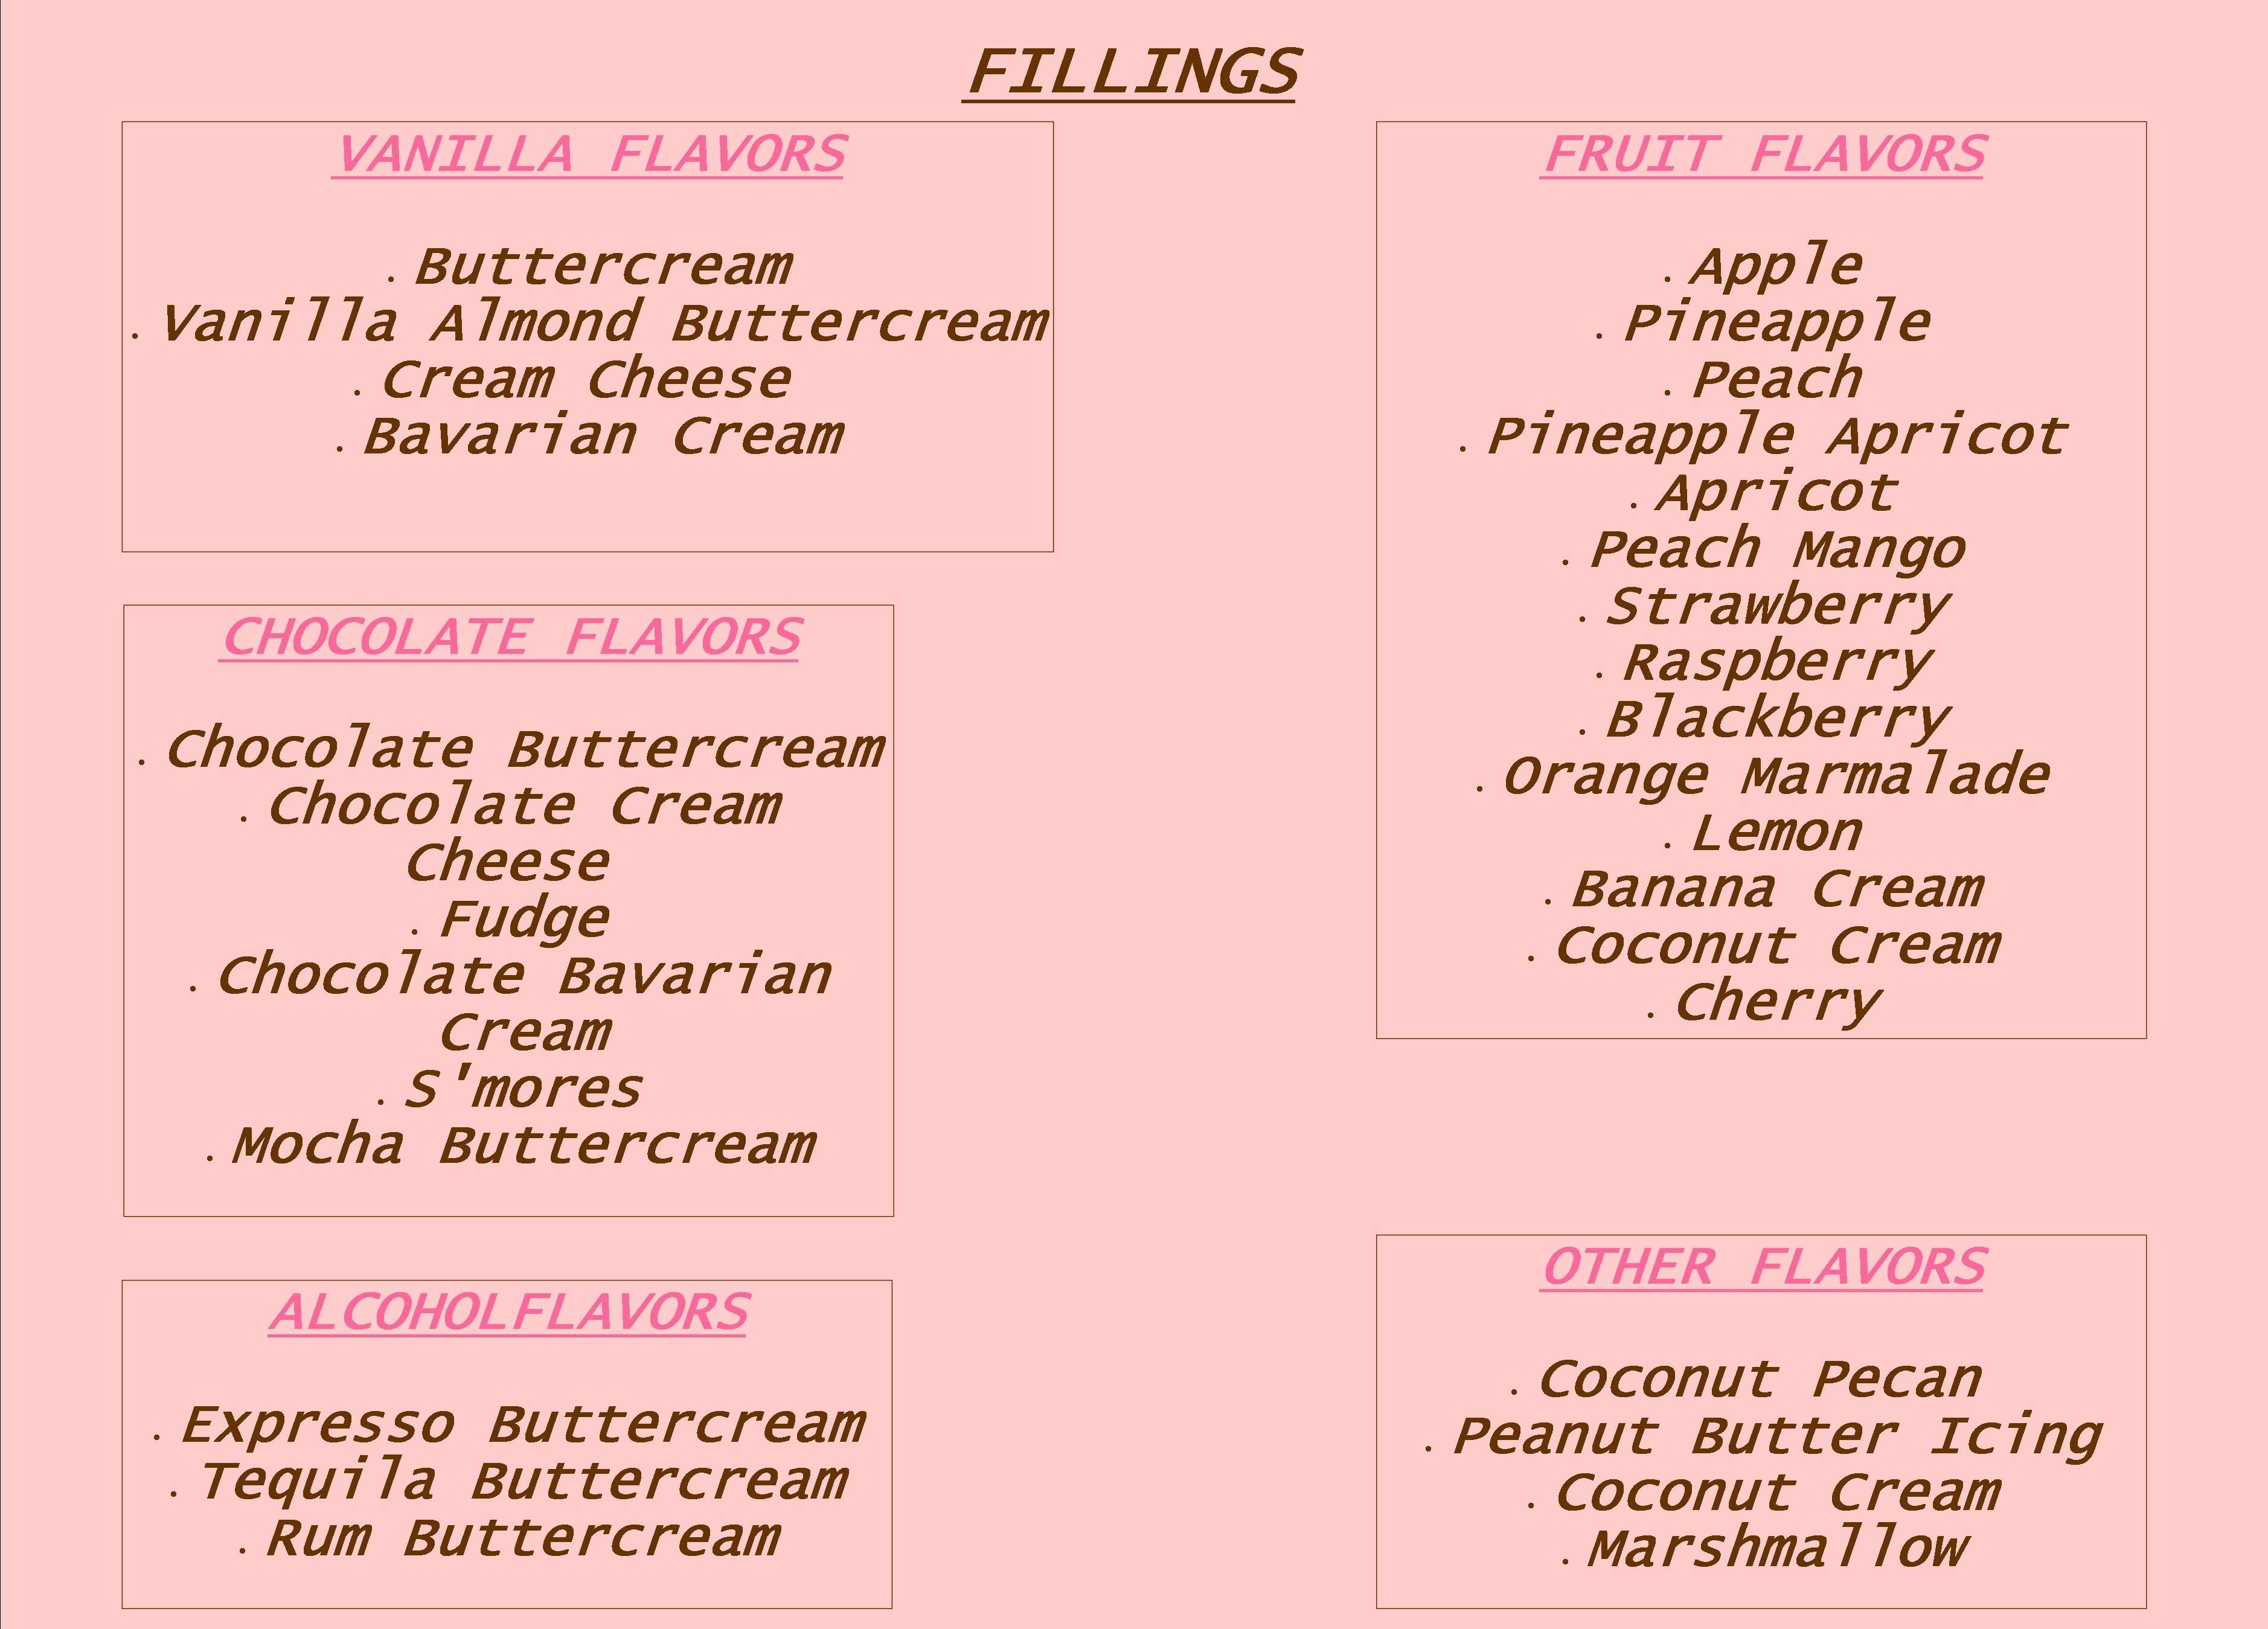 10 Cute Cake Flavors And Fillings Ideas perfect wedding cake flavors and fillings b46 on images gallery m37 2020